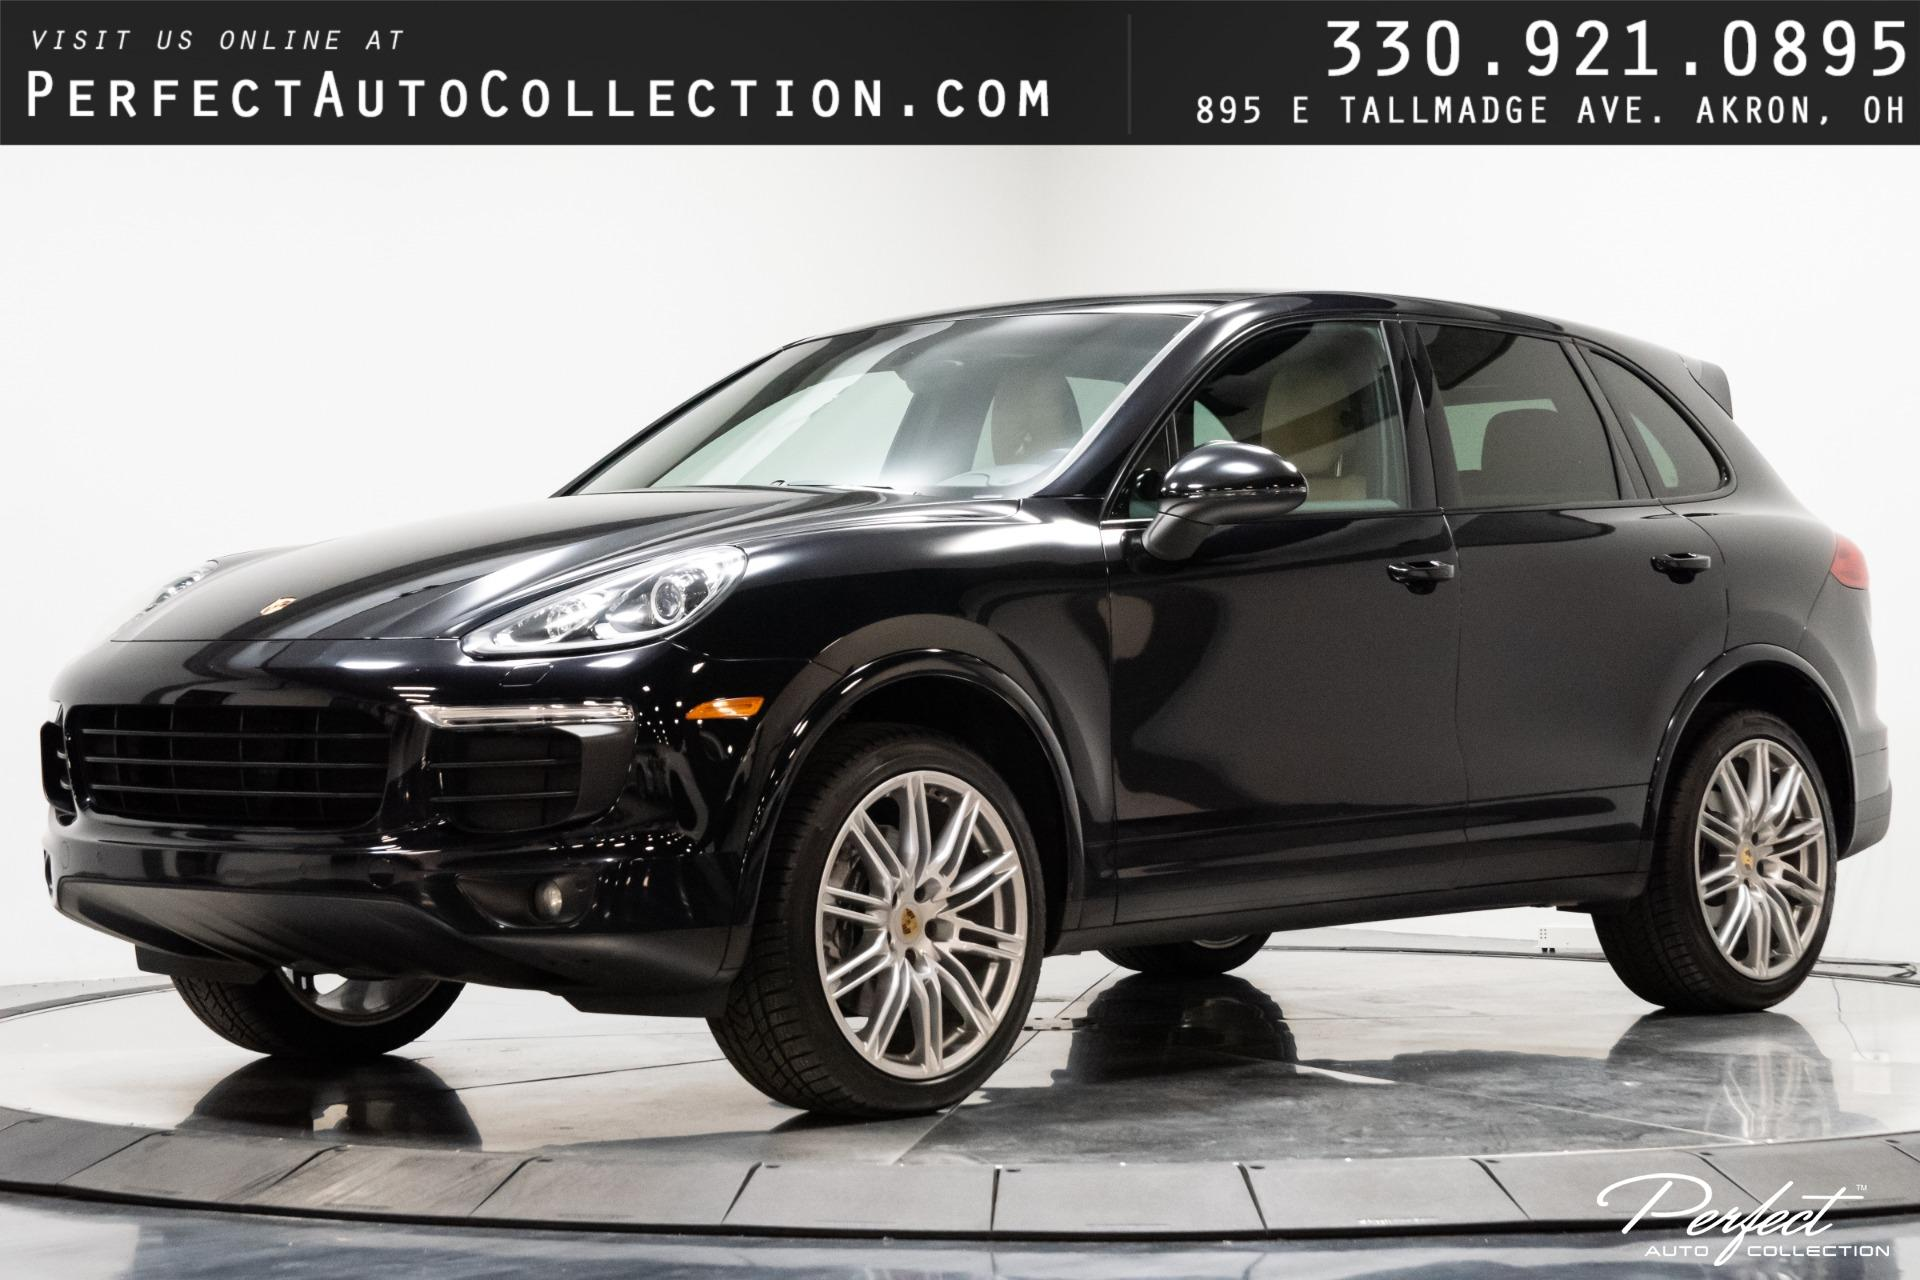 Used 2017 Porsche Cayenne for sale Sold at Perfect Auto Collection in Akron OH 44310 1